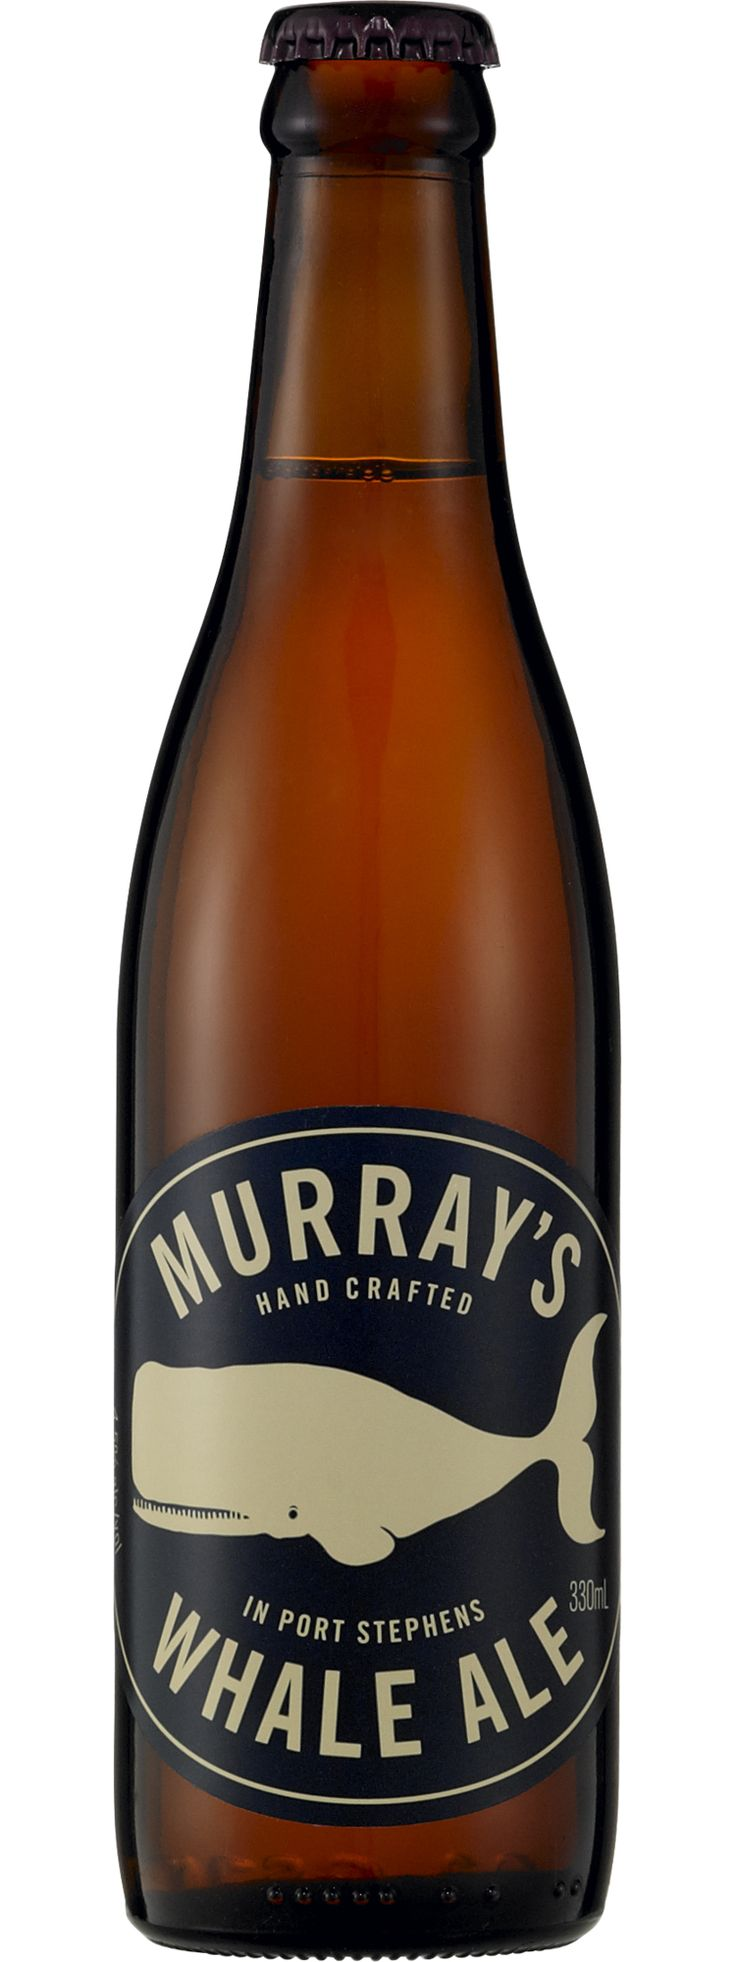 Murrayu0027s Whale Ale One of the only